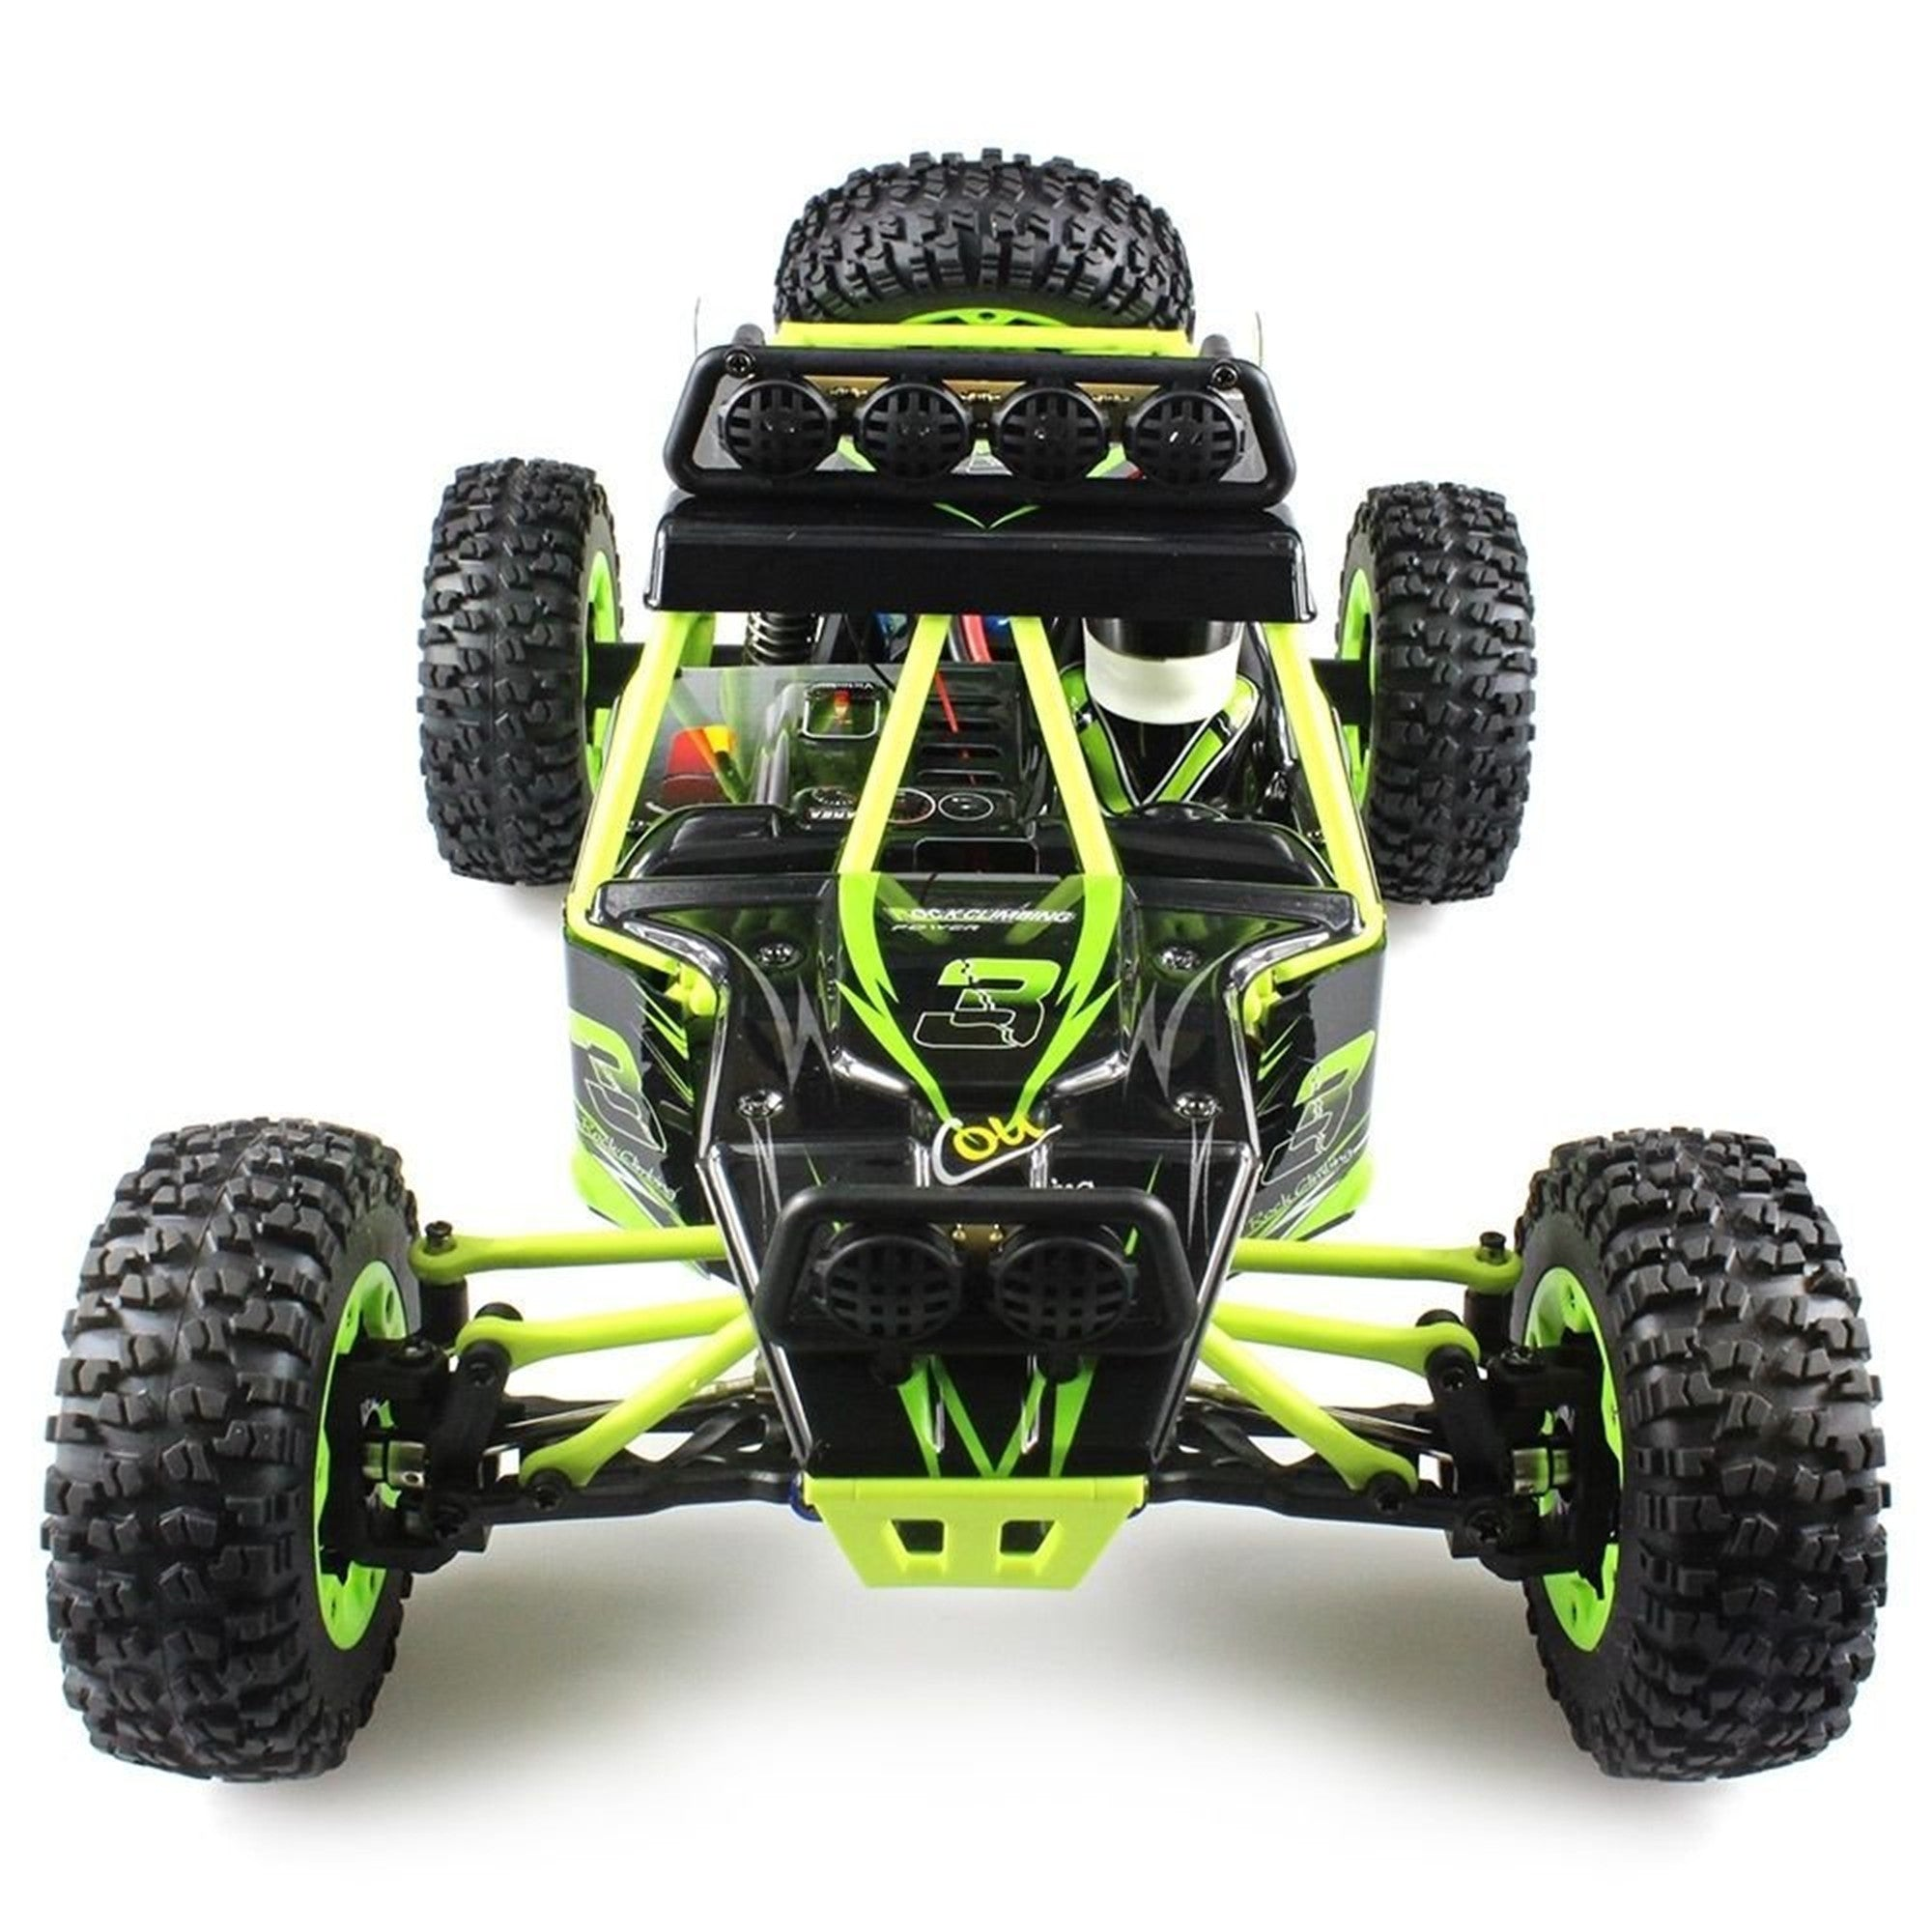 GizmoVine 12428 RC Cars Off-Road Rock Climber 1/12 High Speed 31 25mph 4WD  2 4Ghz Remote Control Truck Climber RC Climbing Cars RTR with LED Light